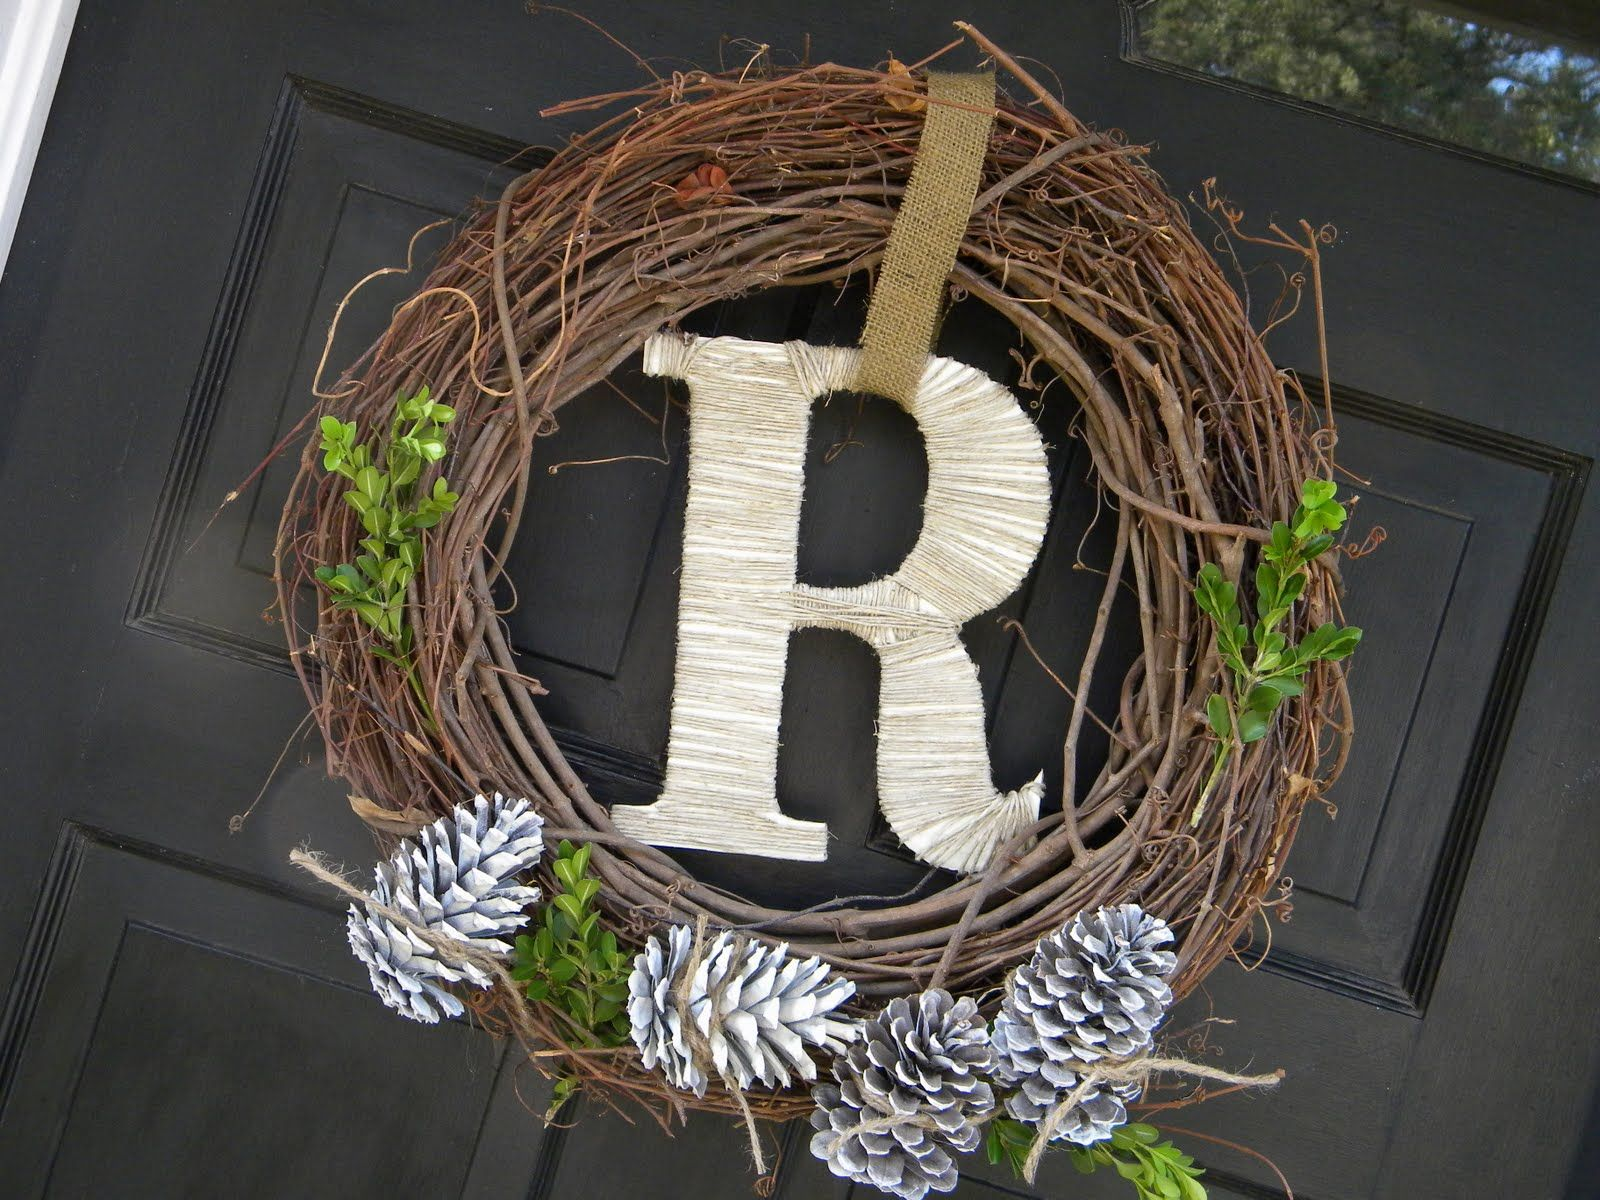 House tour with some morning t rustic wreath grapevine